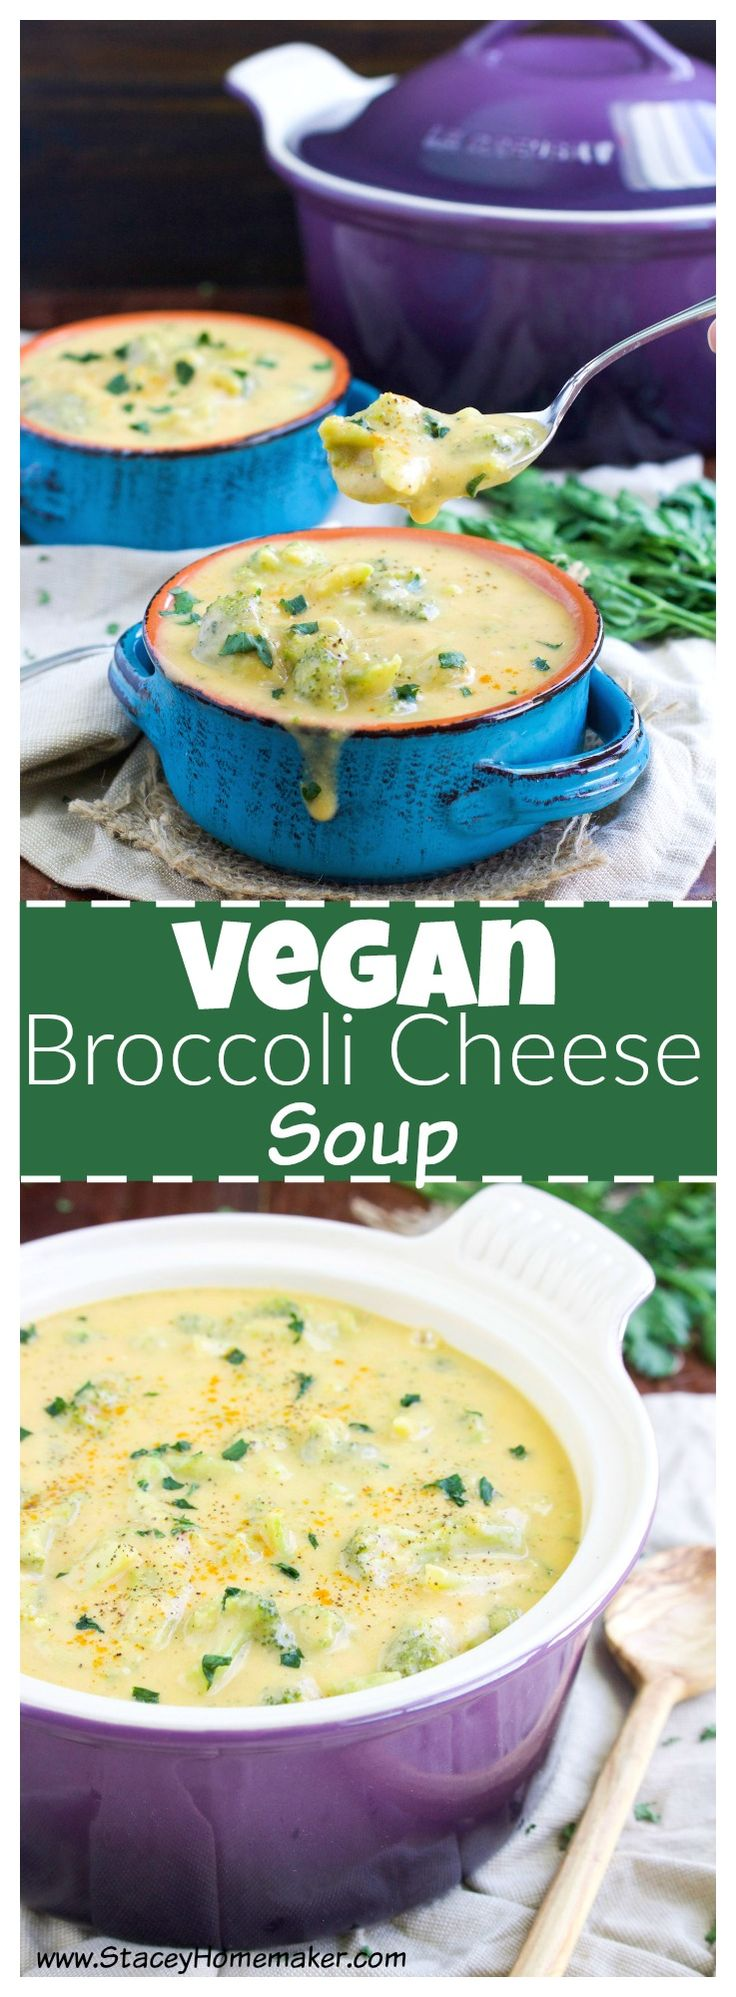 "This thick and creamy vegan broccoli cheese soup recipe is loaded with ""cheesy"" goodness that will quench your craving for comfort food any night of the week. Kid-friendly, vegan, dairy-free and gluten-free."